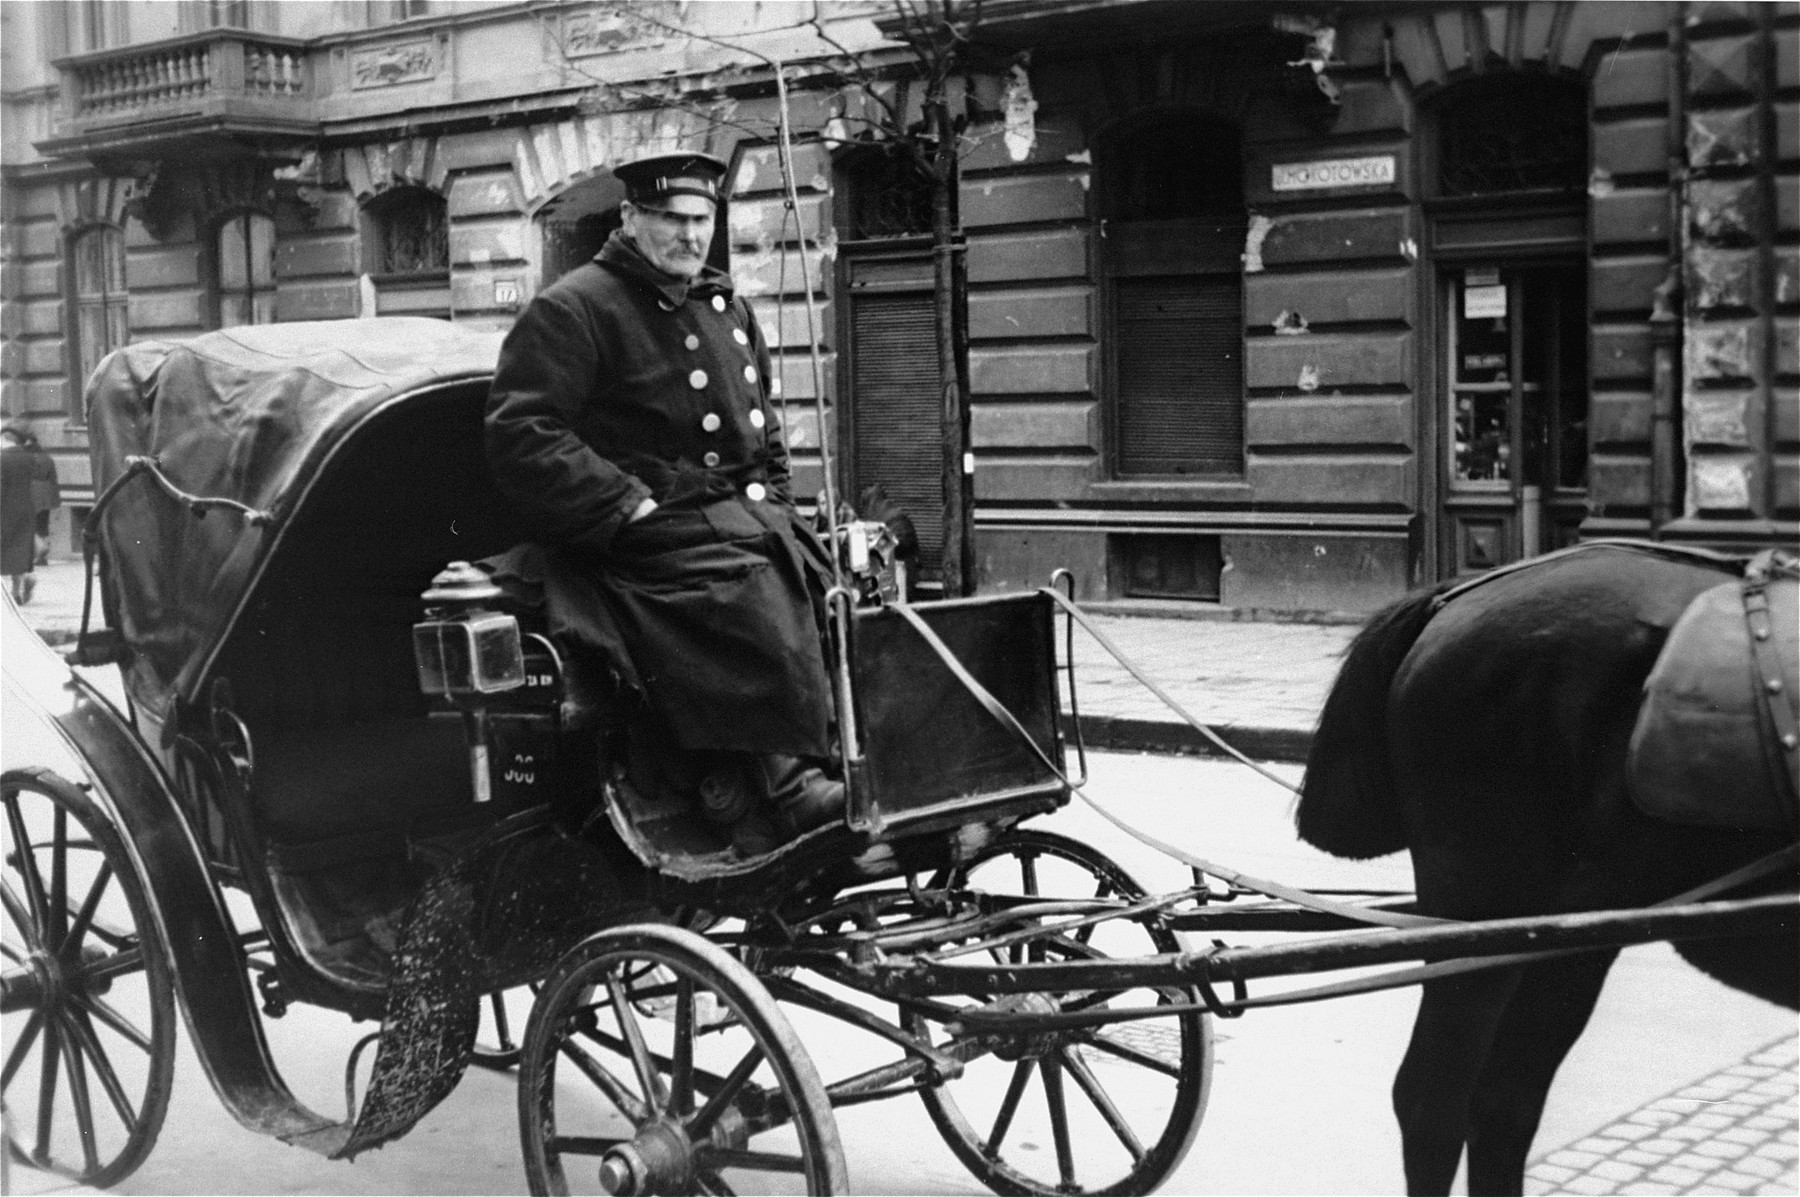 A hansom cab and its driver in Warsaw.